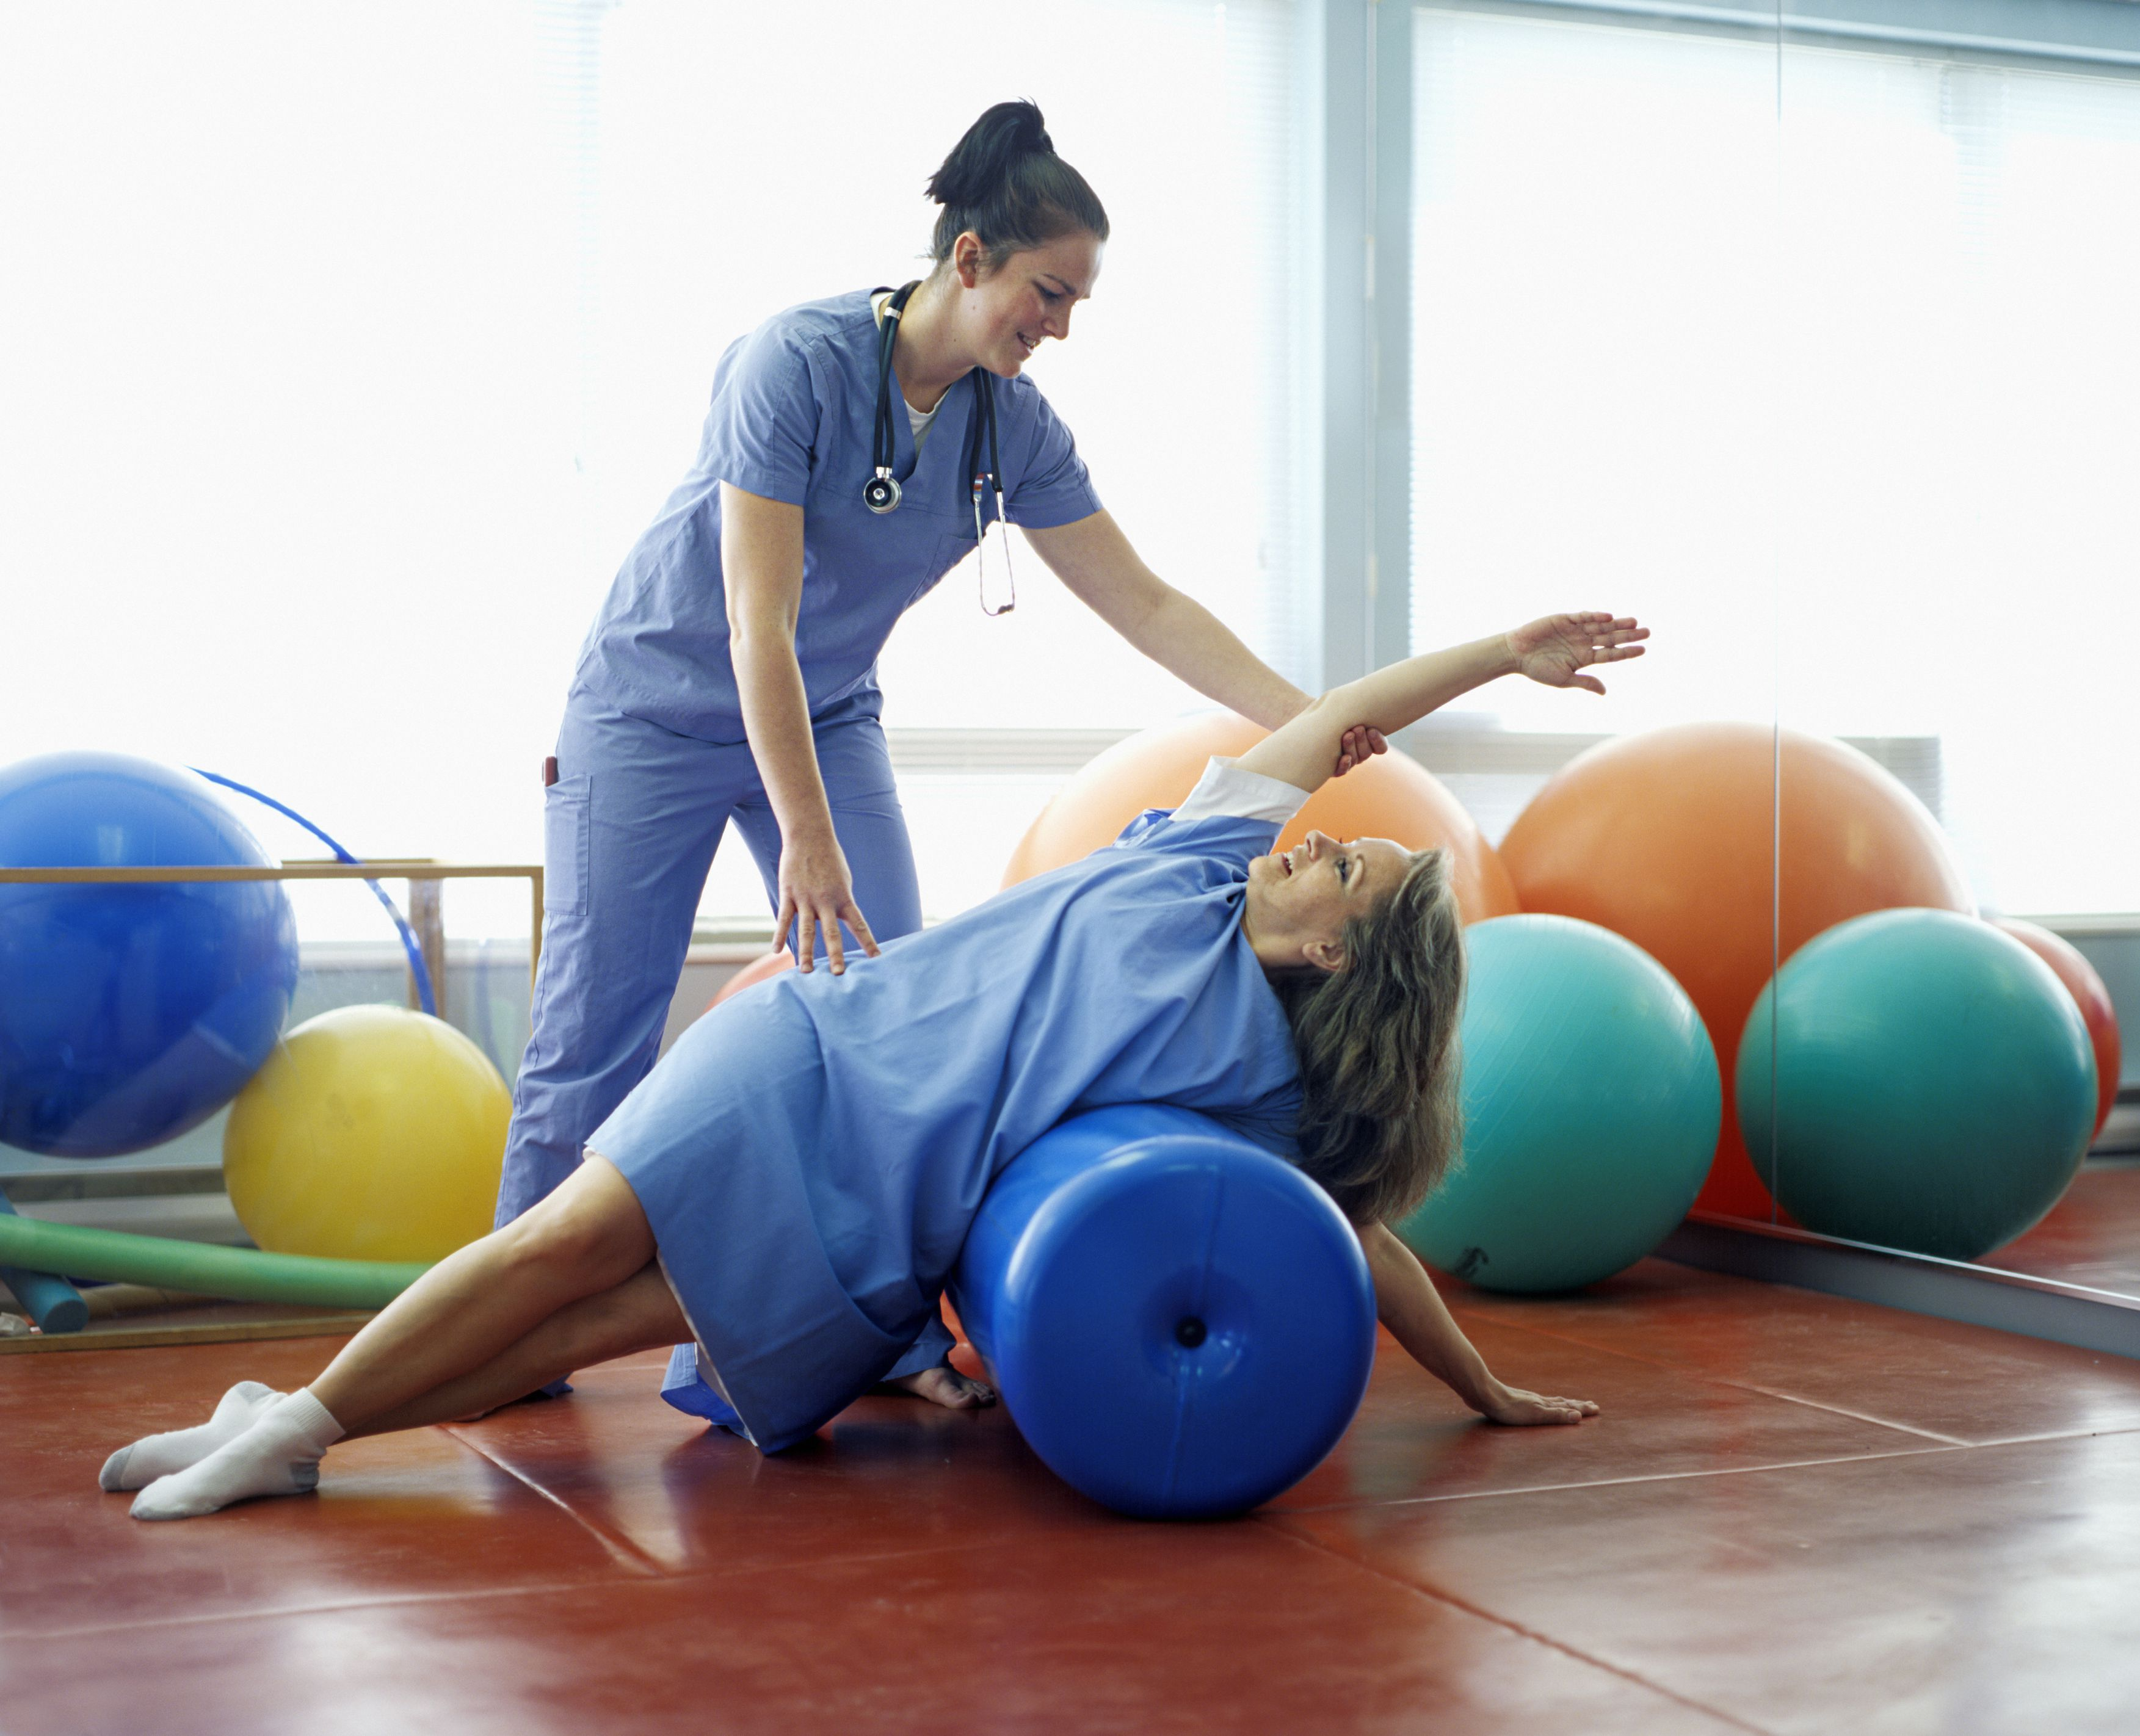 Article on physical therapy - Article On Physical Therapy 46